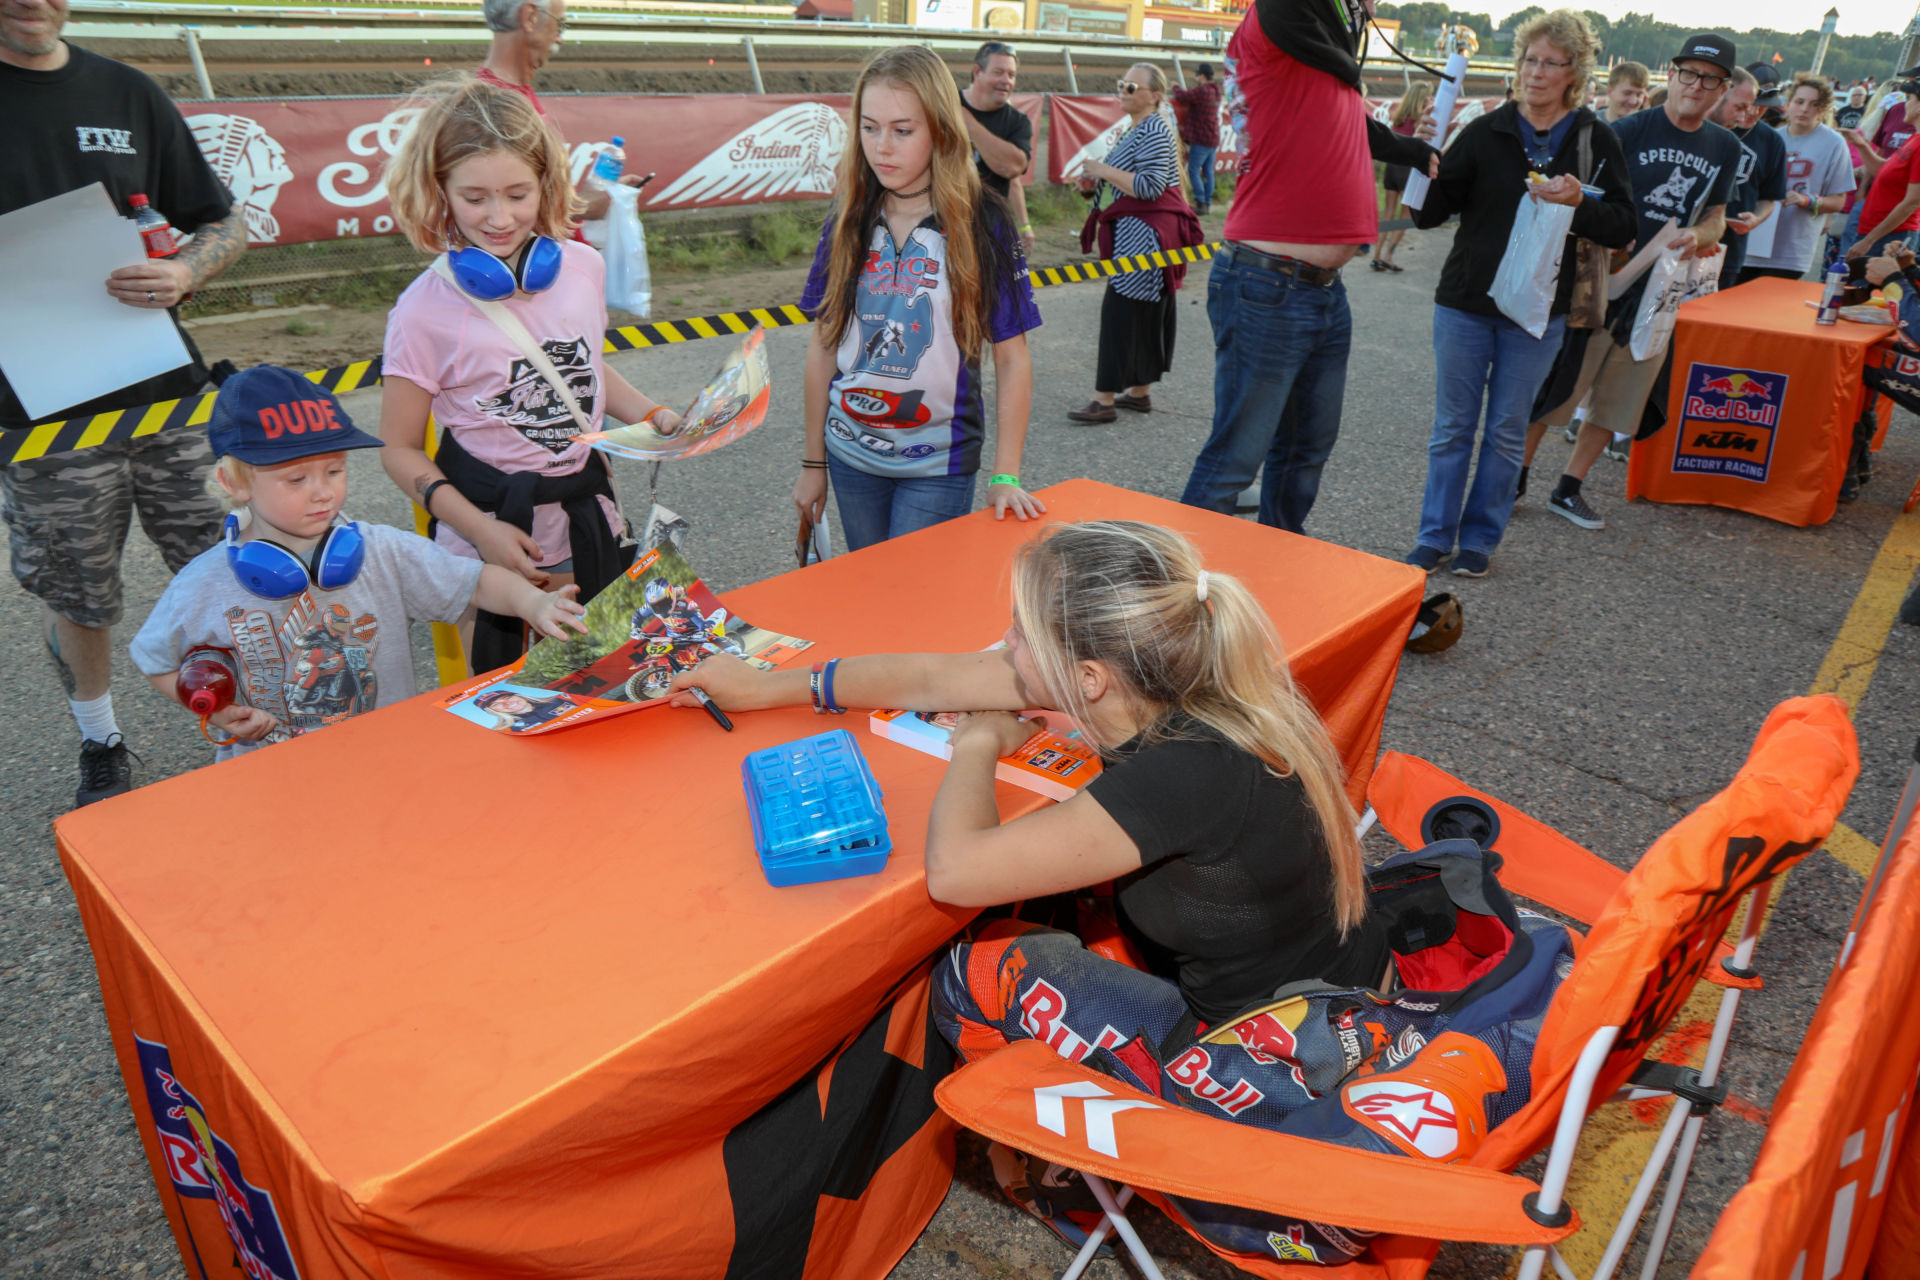 Shayna Texter-Bauman signing autographs for fans at an American Flat Track event in 2019. Photo courtesy AFT.